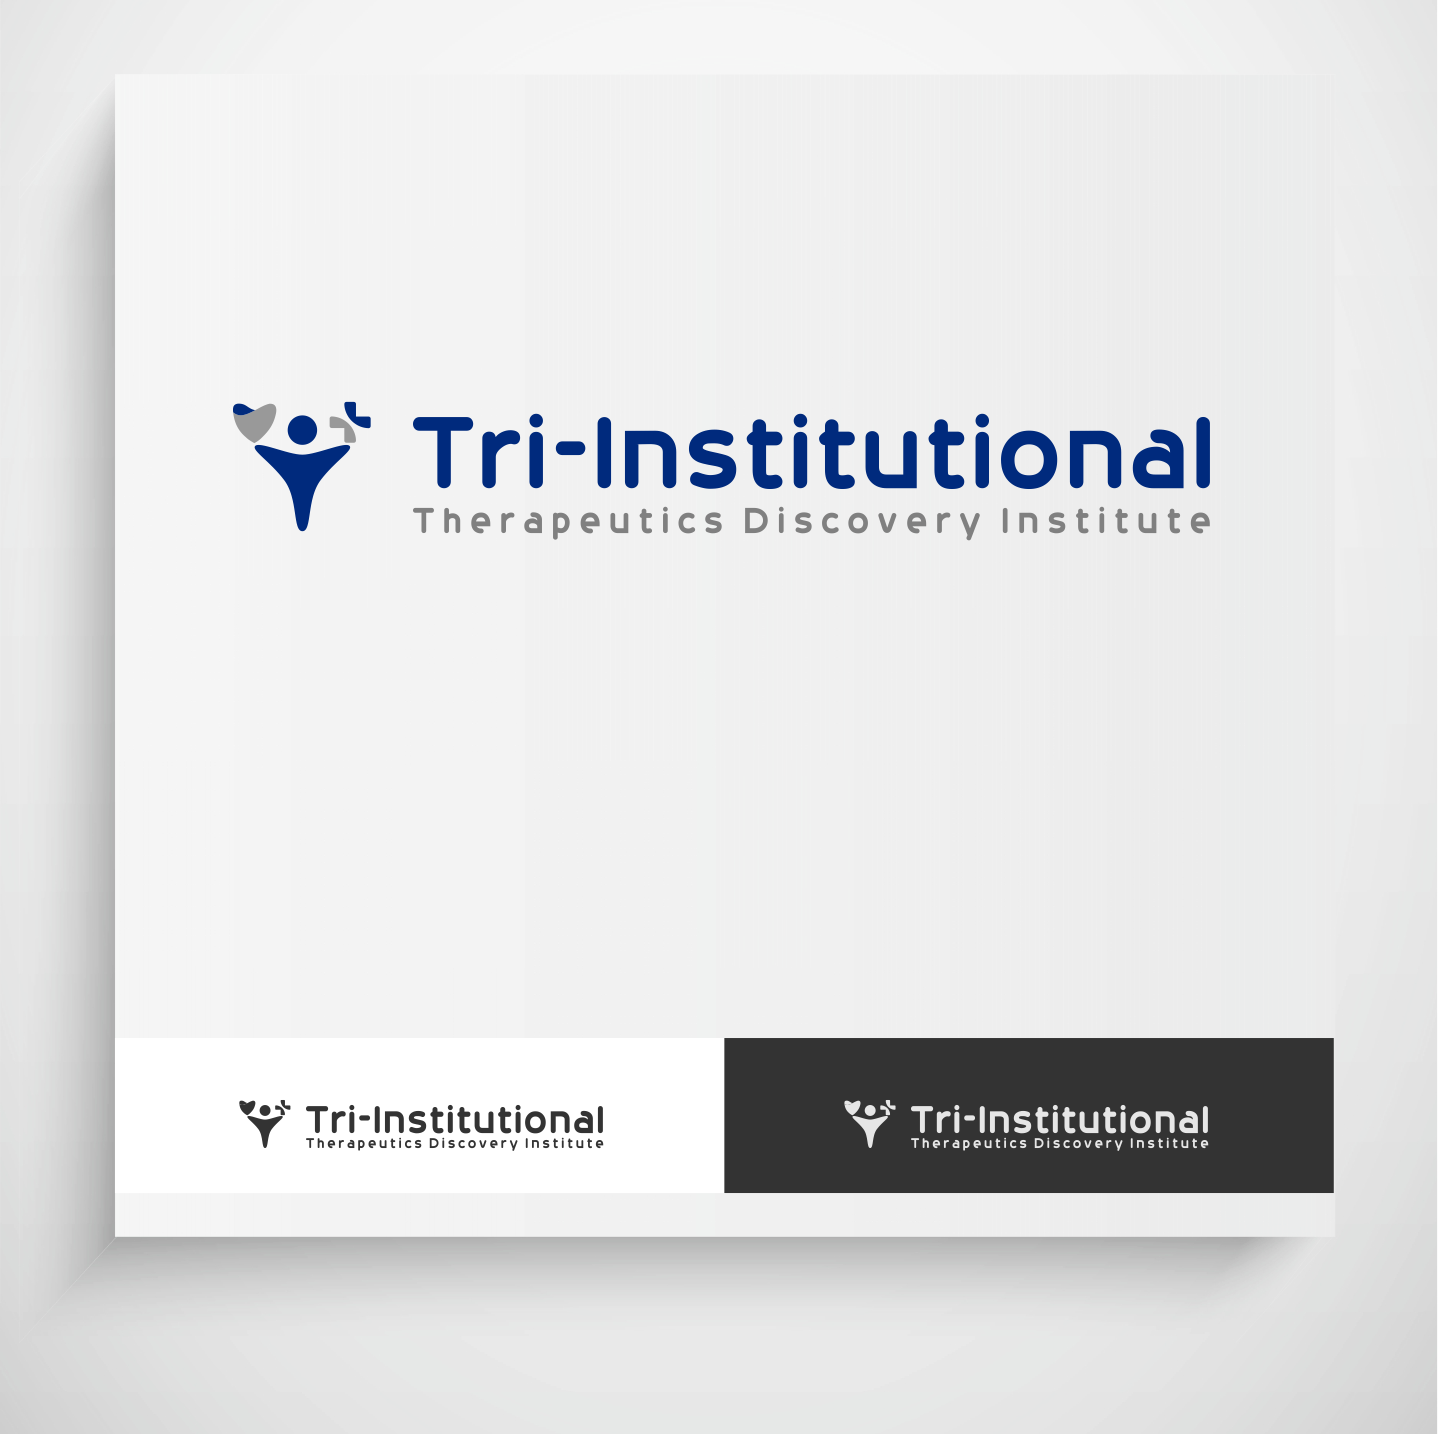 Logo Design by Krzysztof Mokanek - Entry No. 74 in the Logo Design Contest Inspiring Logo Design for Tri-Institutional Therapeutics Discovery Institute.